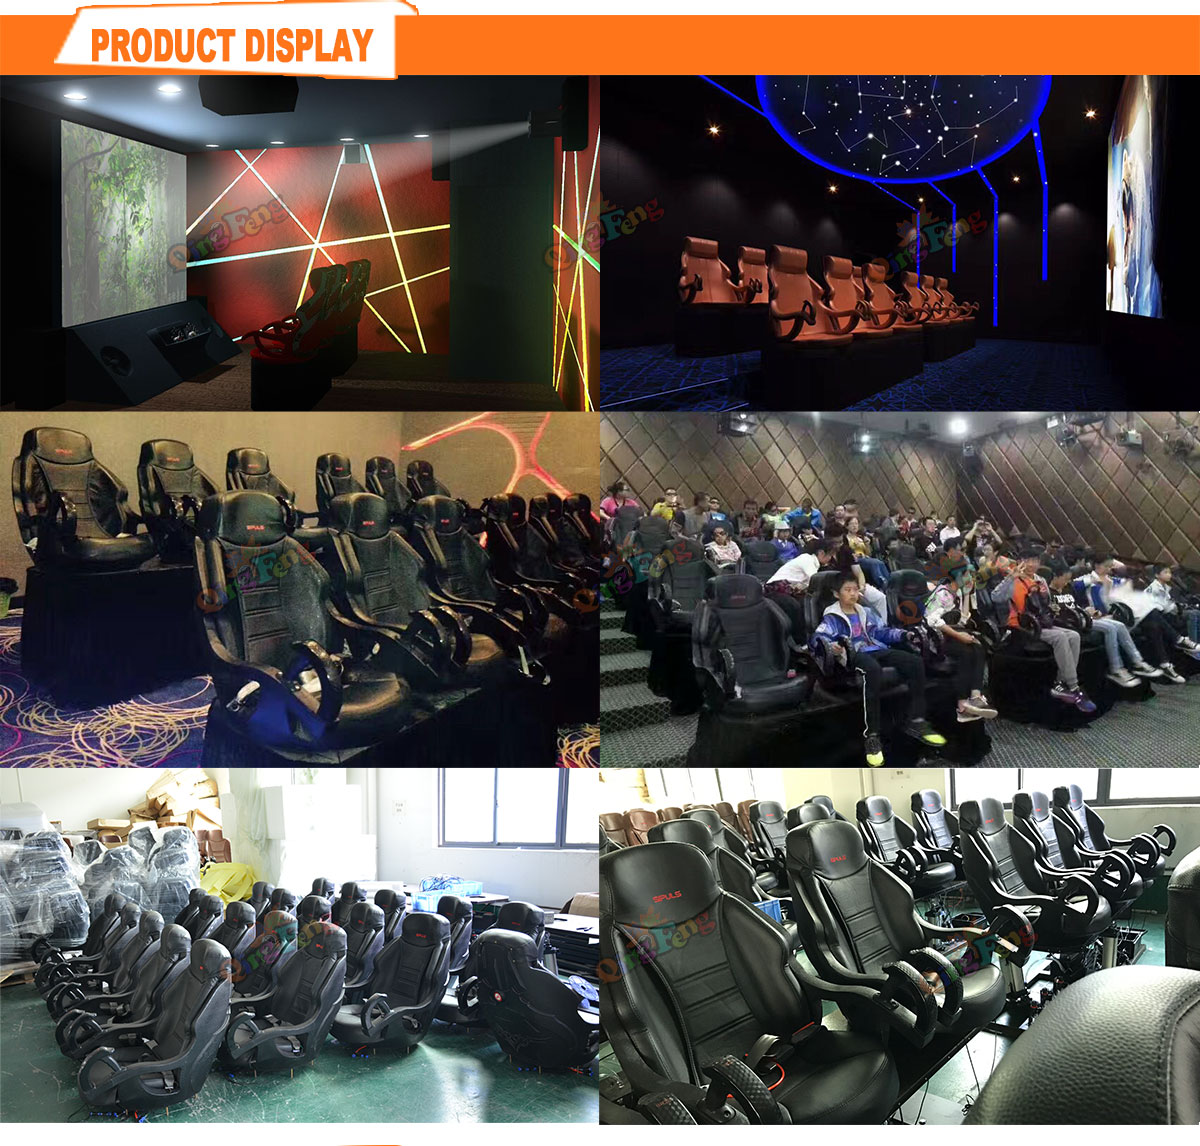 Qingfeng high quality 12d 9d egg vr 7d 5d cinema equipment 9 seats vr chair 5d cinema